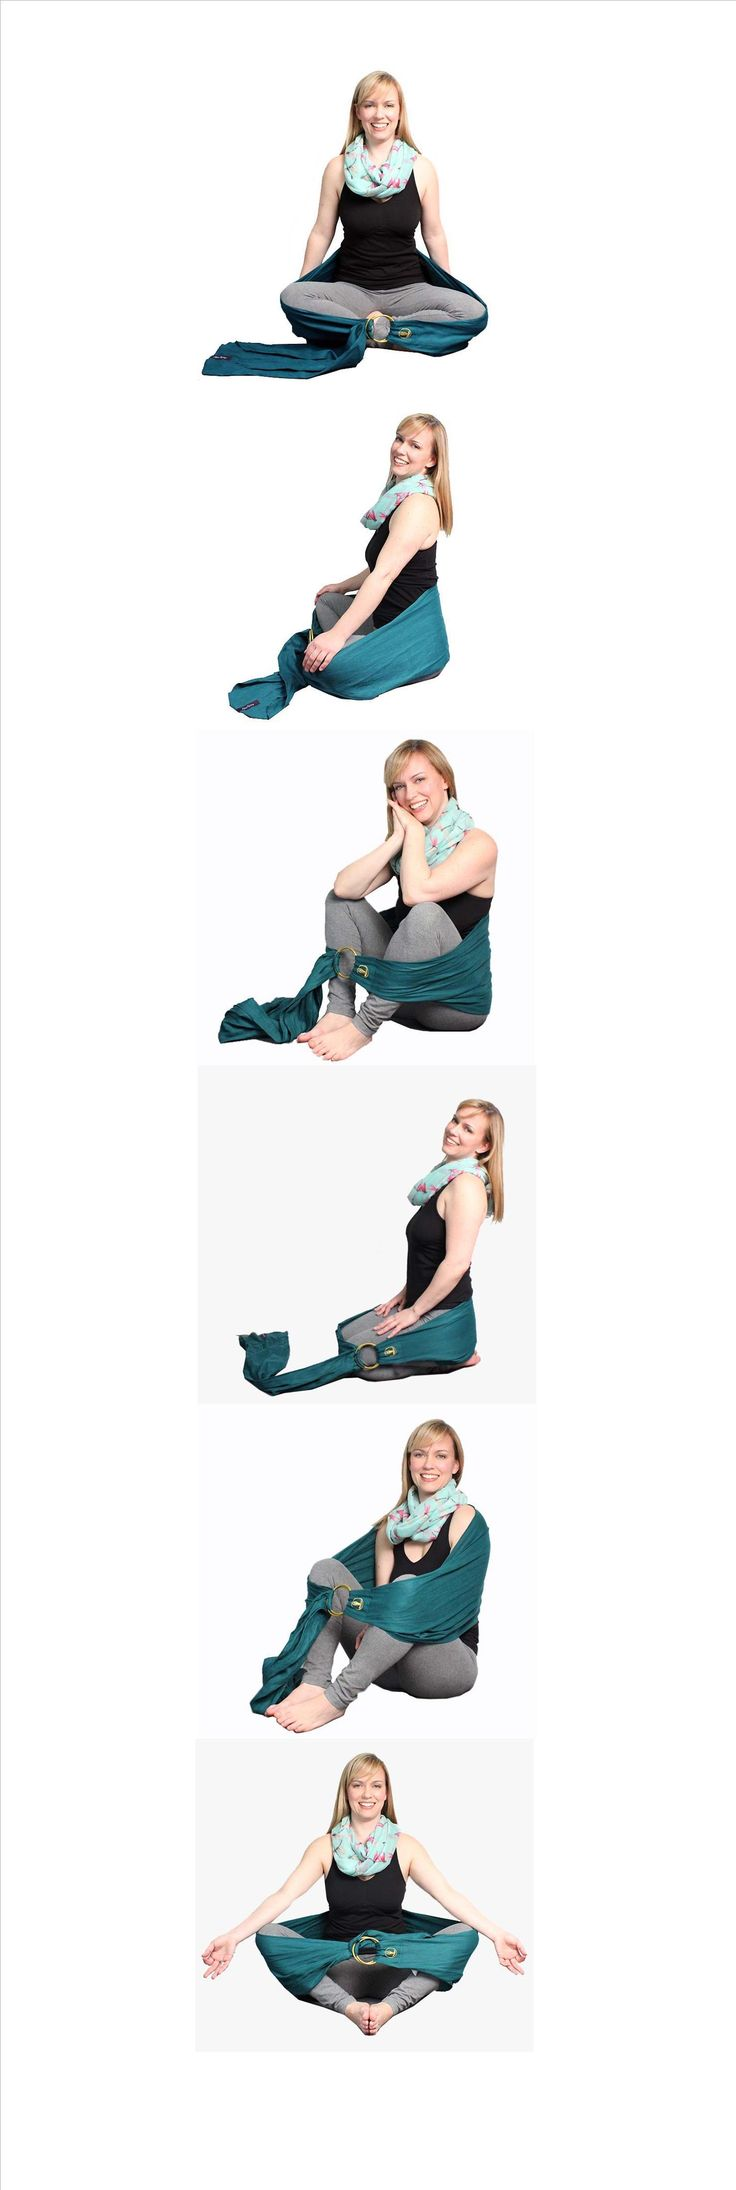 :::: :: ::: Sit in Comfort ::: :: ::::   Sit much? Most of us do, so why not sit comfortably? The Lotus Wrap provides lumbar and sacral support to the spine when sitting on the floor or in a chair. Bring the Lotus Wrap to the office, the beach, workshops, vacations and more. Weighing only 0.5lbs it travels easily across the street and around the world.